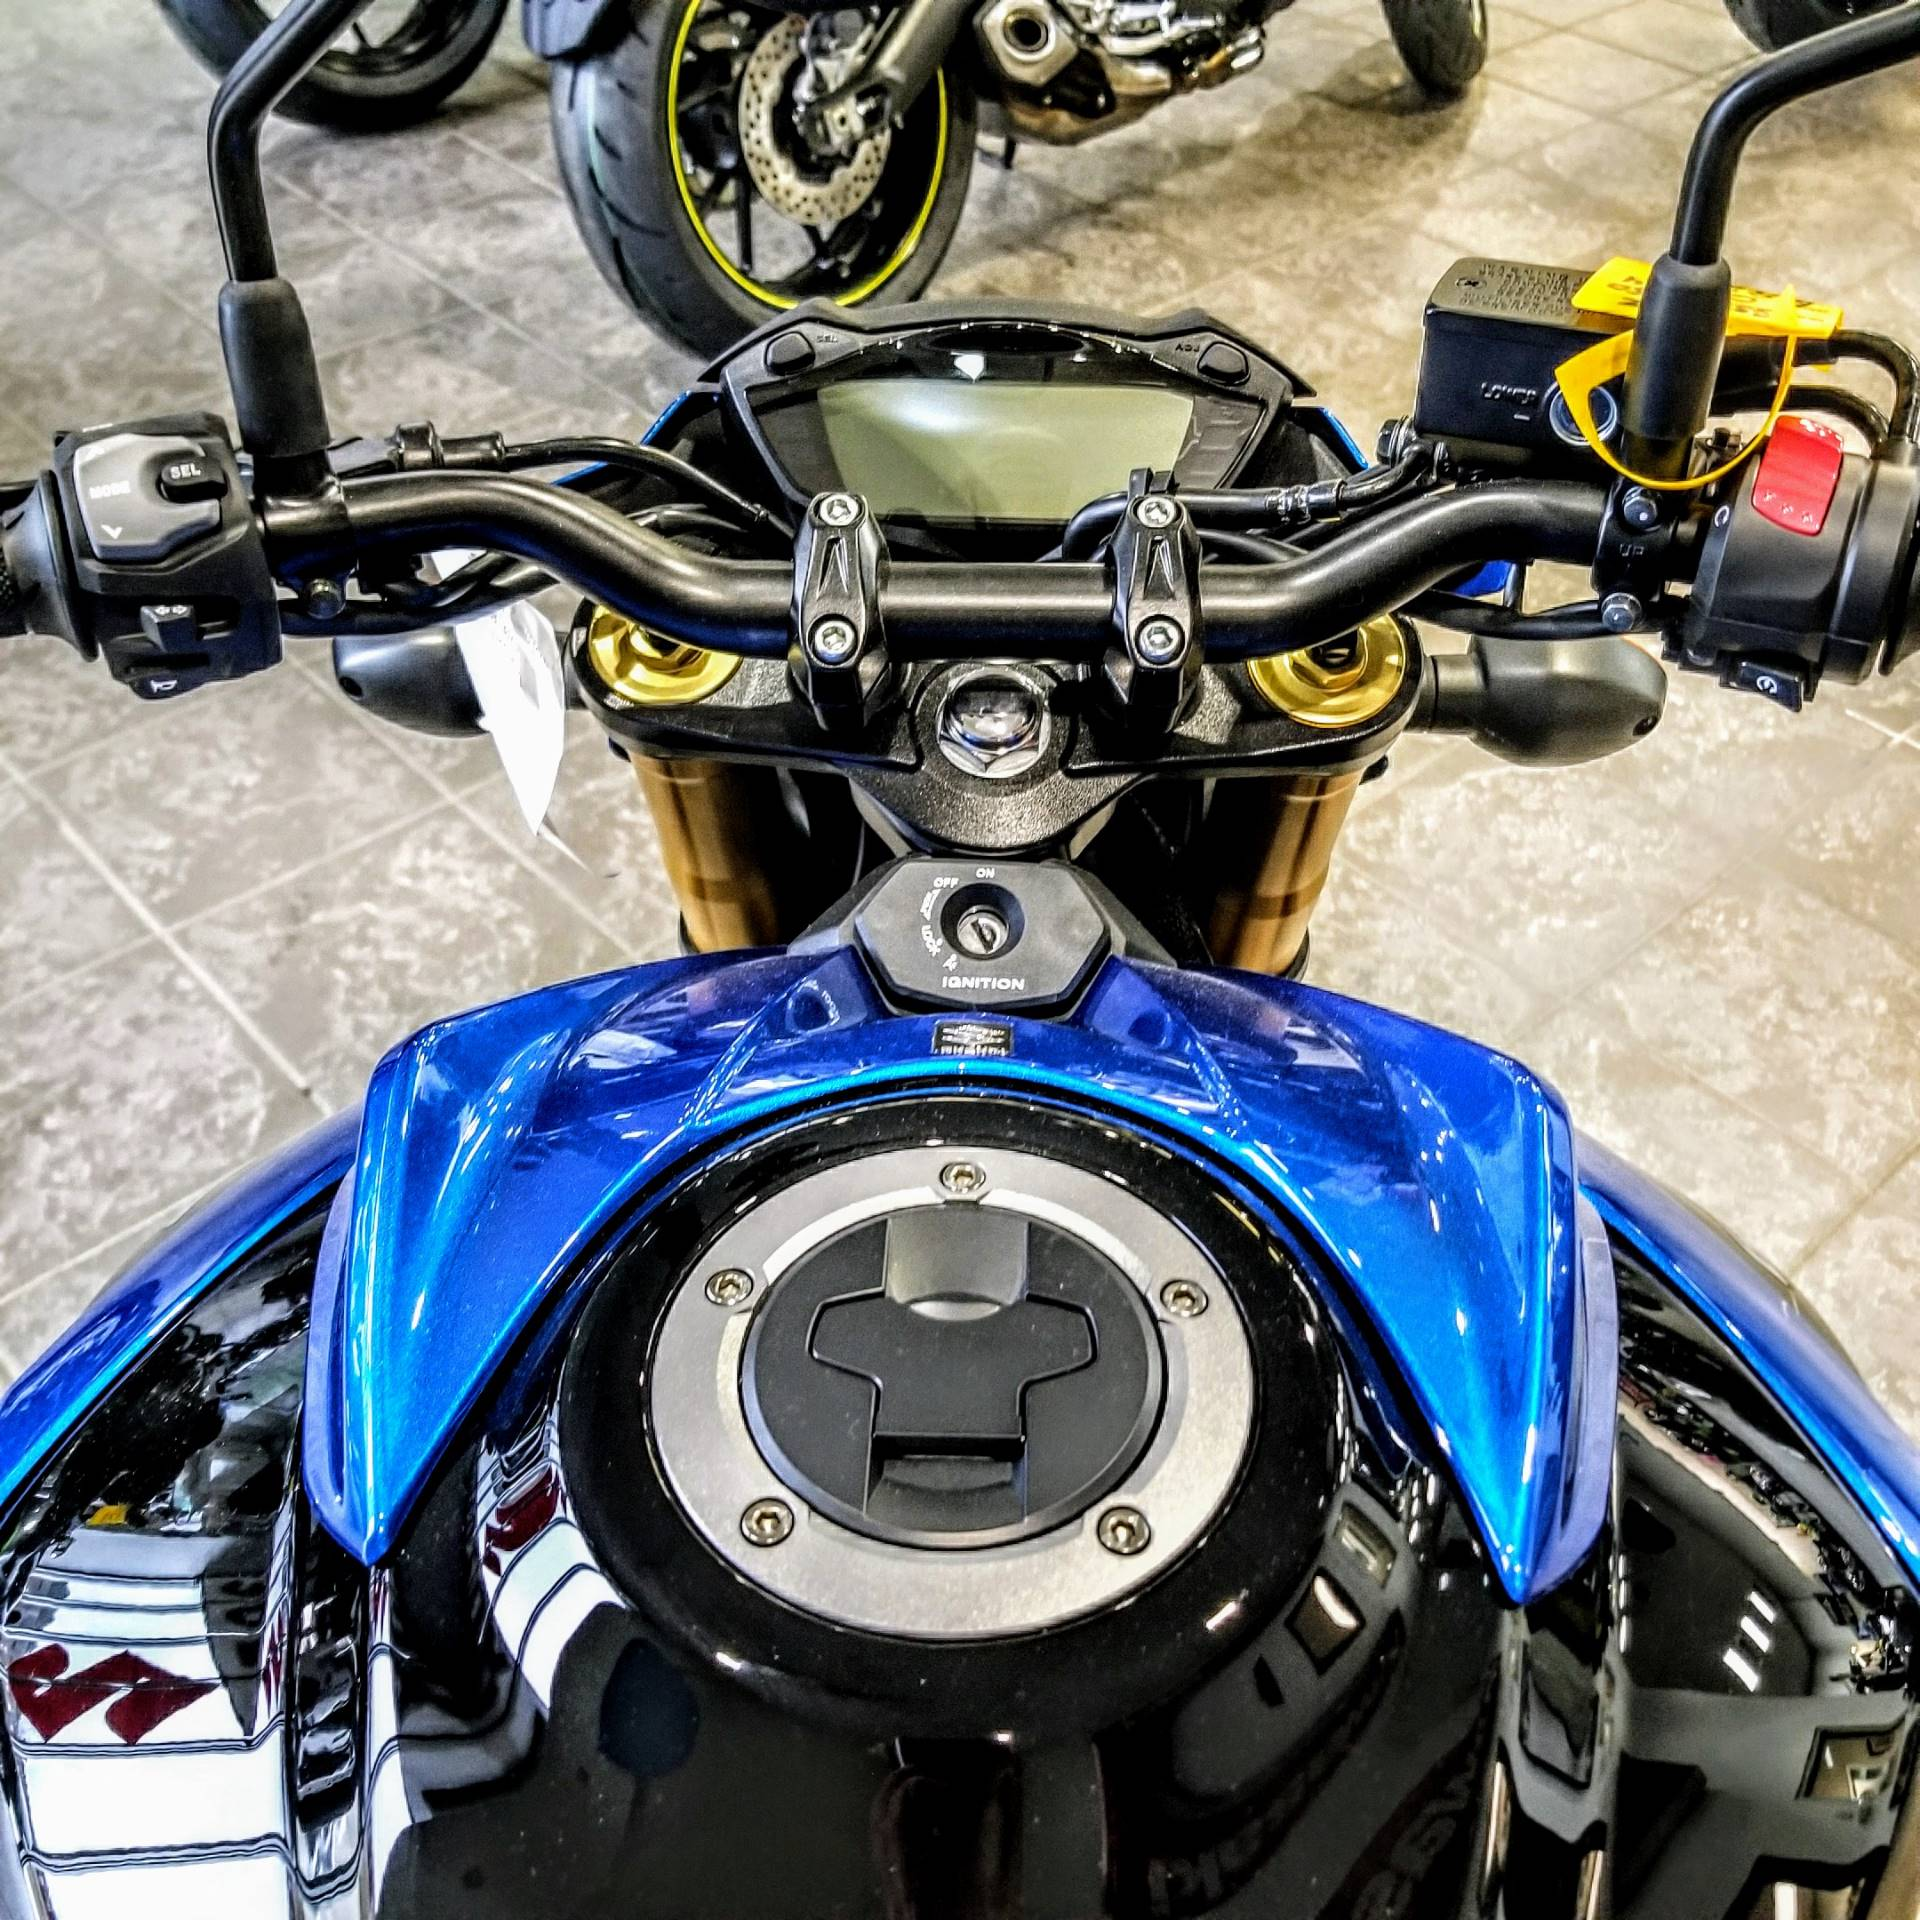 New 2018 Suzuki Gsx S750 Motorcycles In Hickory Nc Stock Number